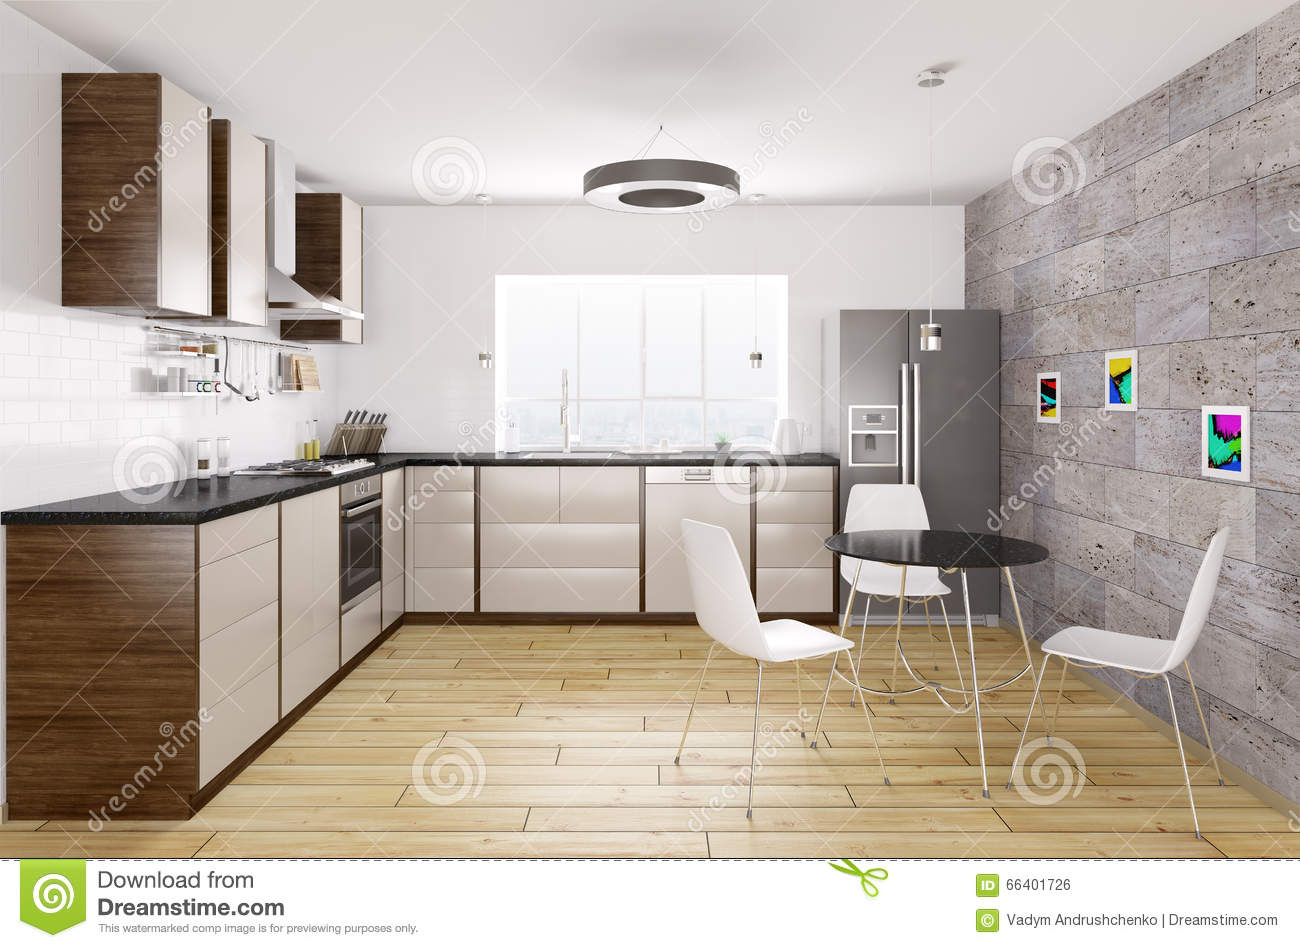 Modern Kitchen Interior modern kitchen interior 3d rendering stock illustration - image